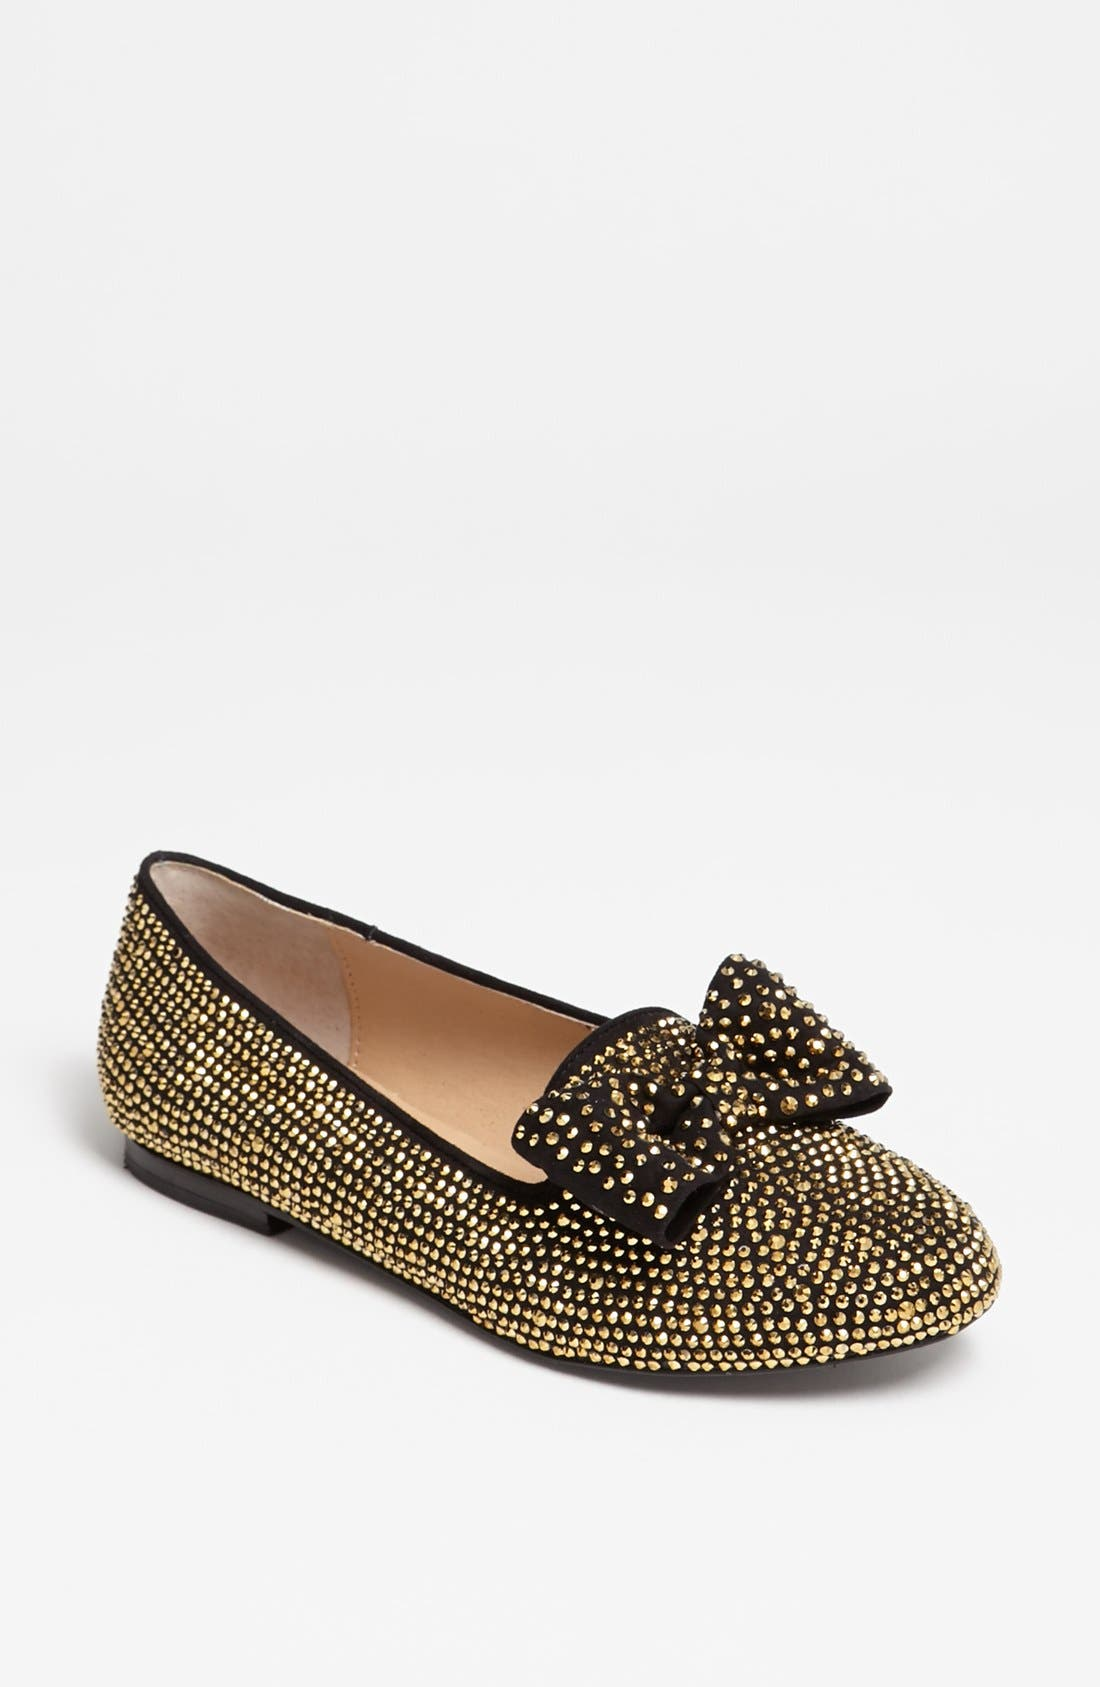 Alternate Image 1 Selected - Steve Madden 'Marble' Flat